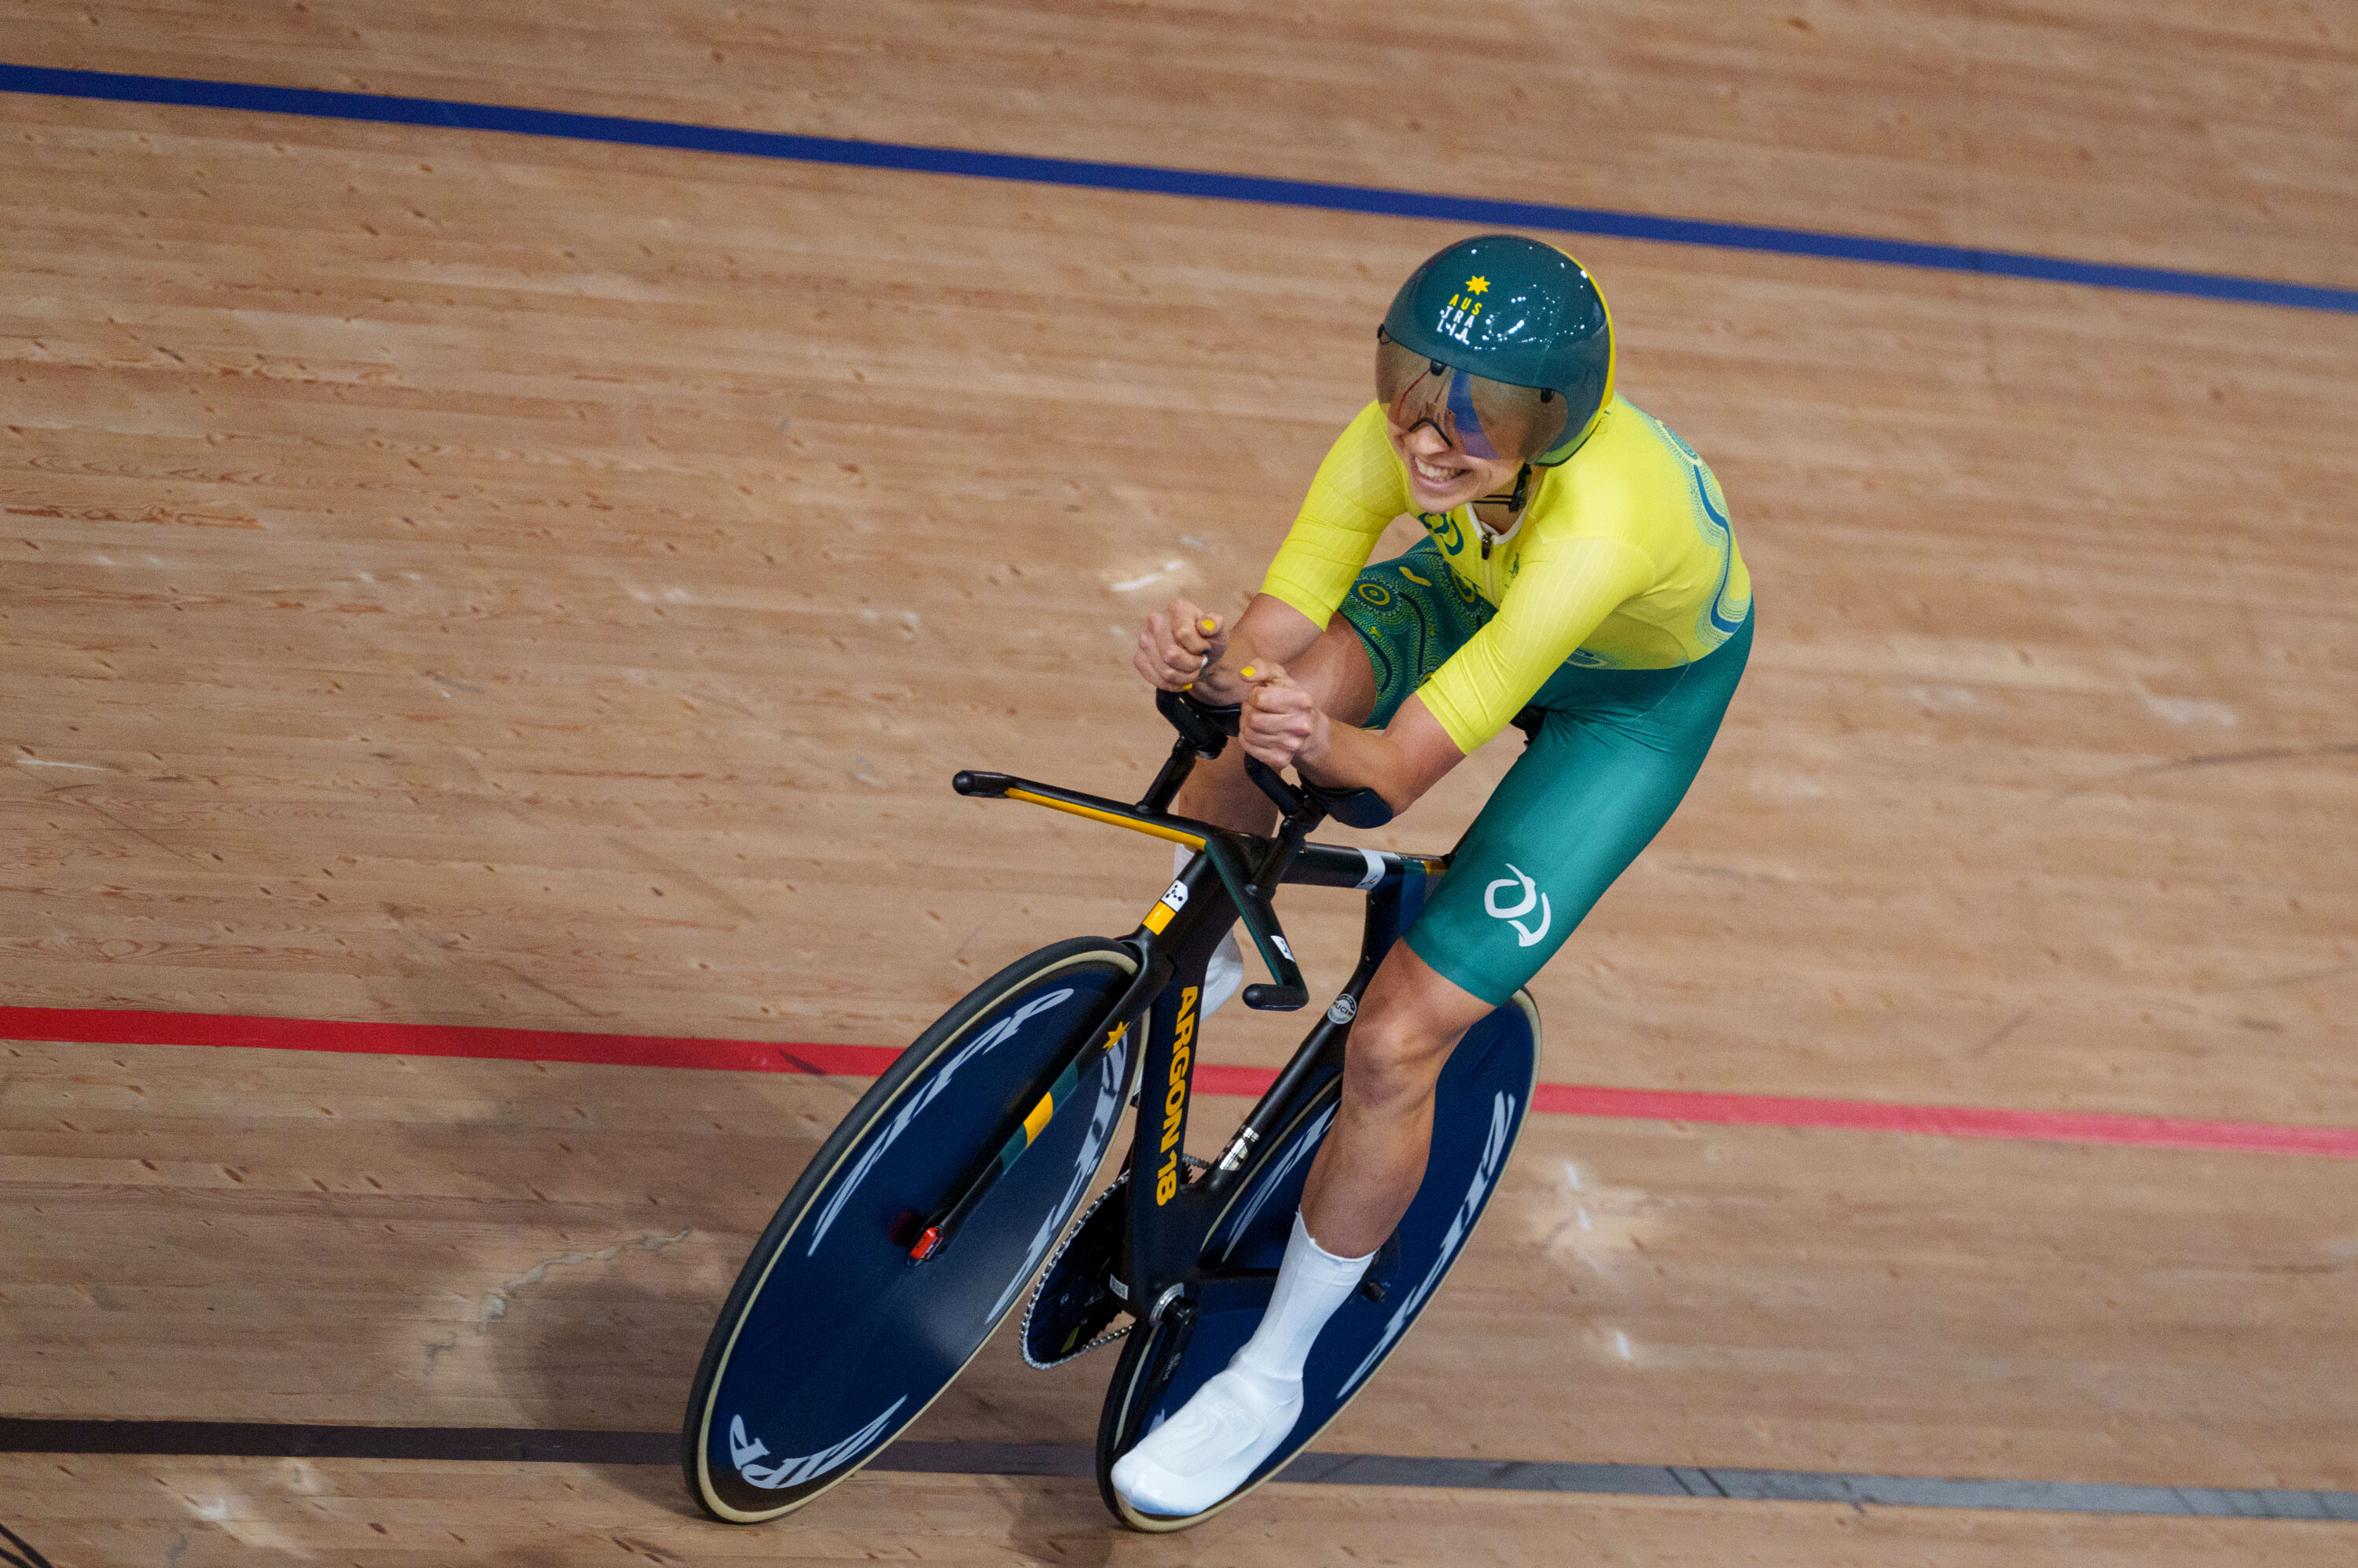 Australia's Paige Greco wins first gold at Tokyo 2020 Paralympics as Japan battles Covid increase